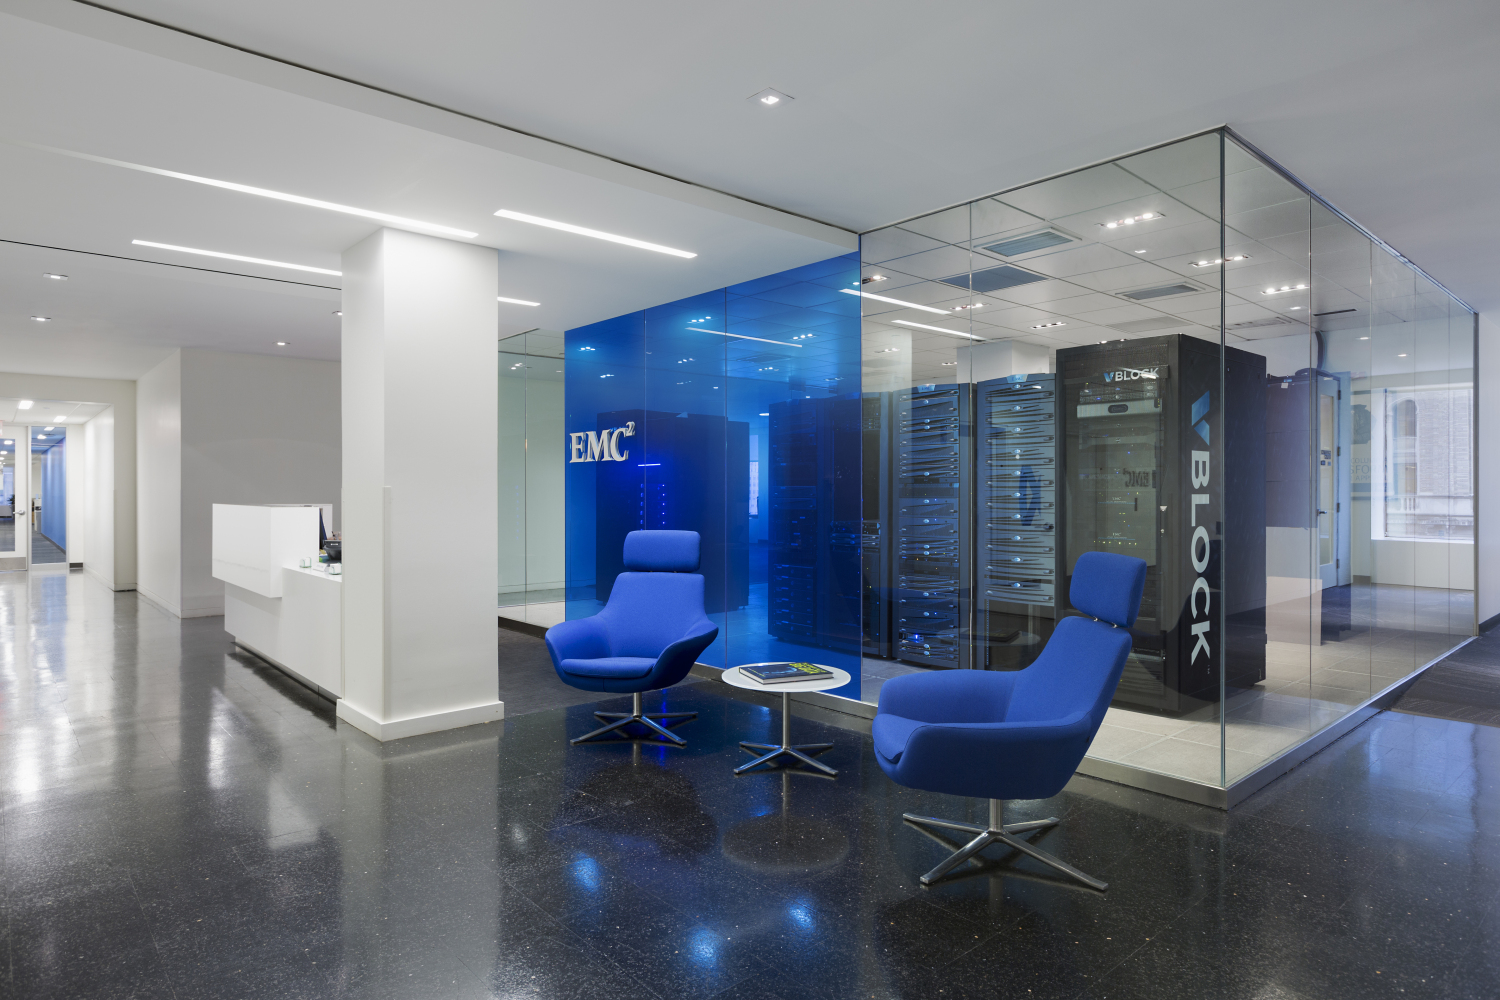 EMC blue branded office